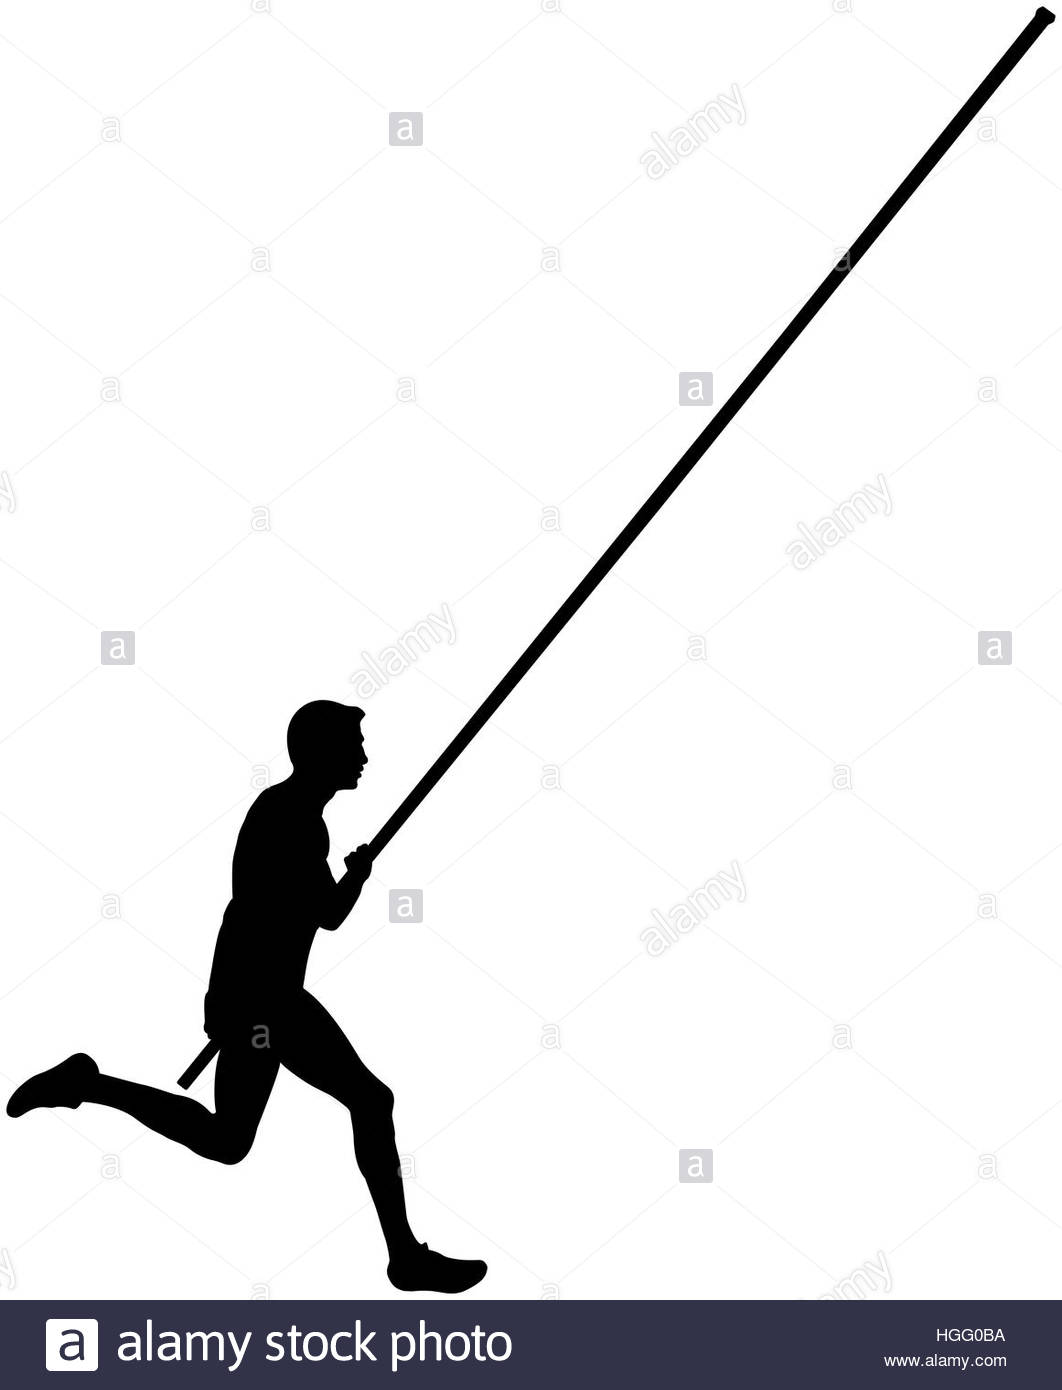 1062x1390 Black Silhouette Running Athlete Male Pole Vault Stock Photo